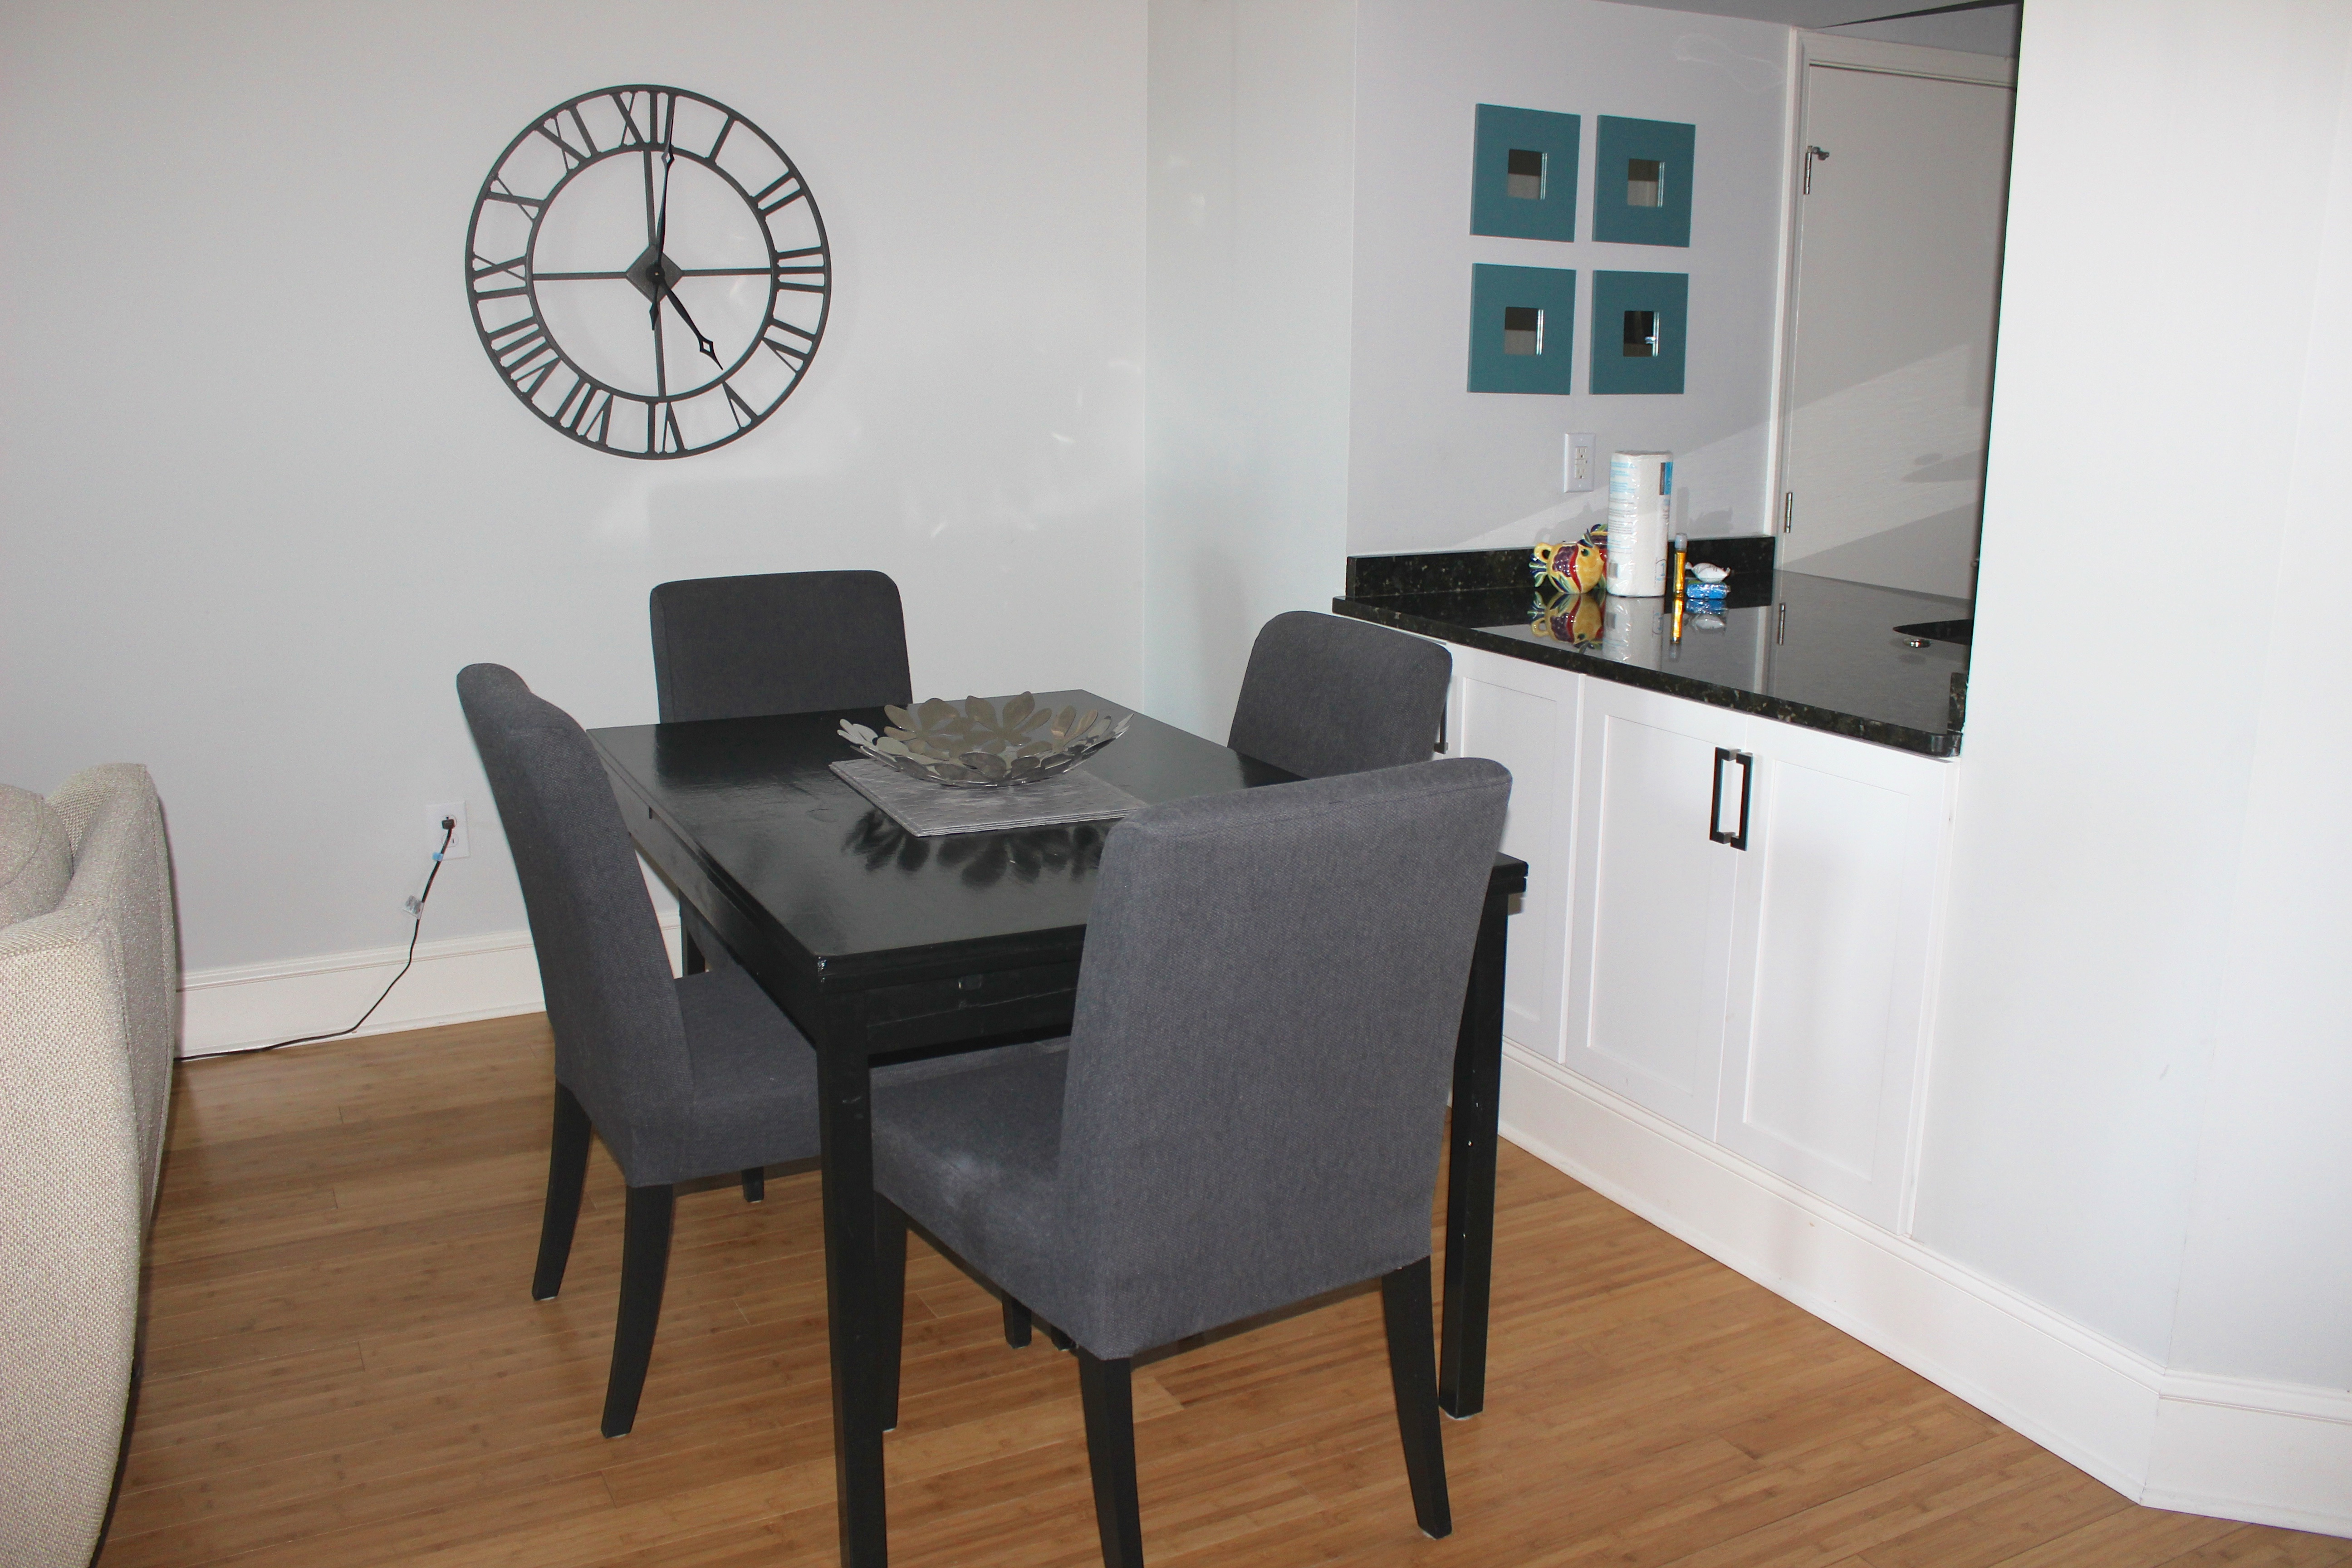 The kitchen opens into the living/dining area.